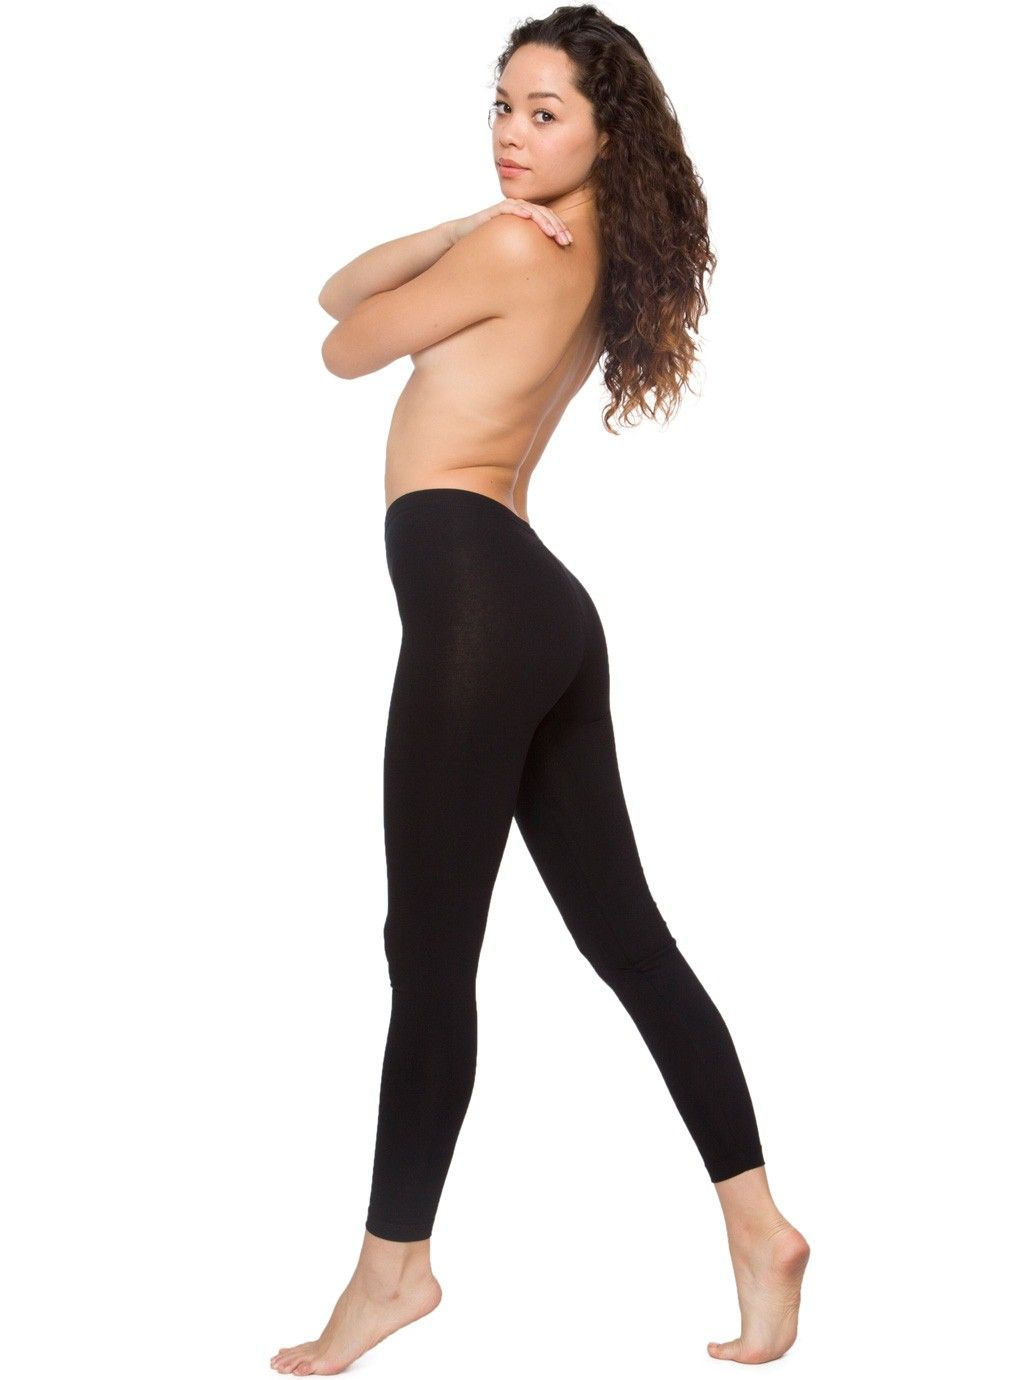 783954d98bfed american apparel cotton spandex jersey leggings! $28 | Products I ...